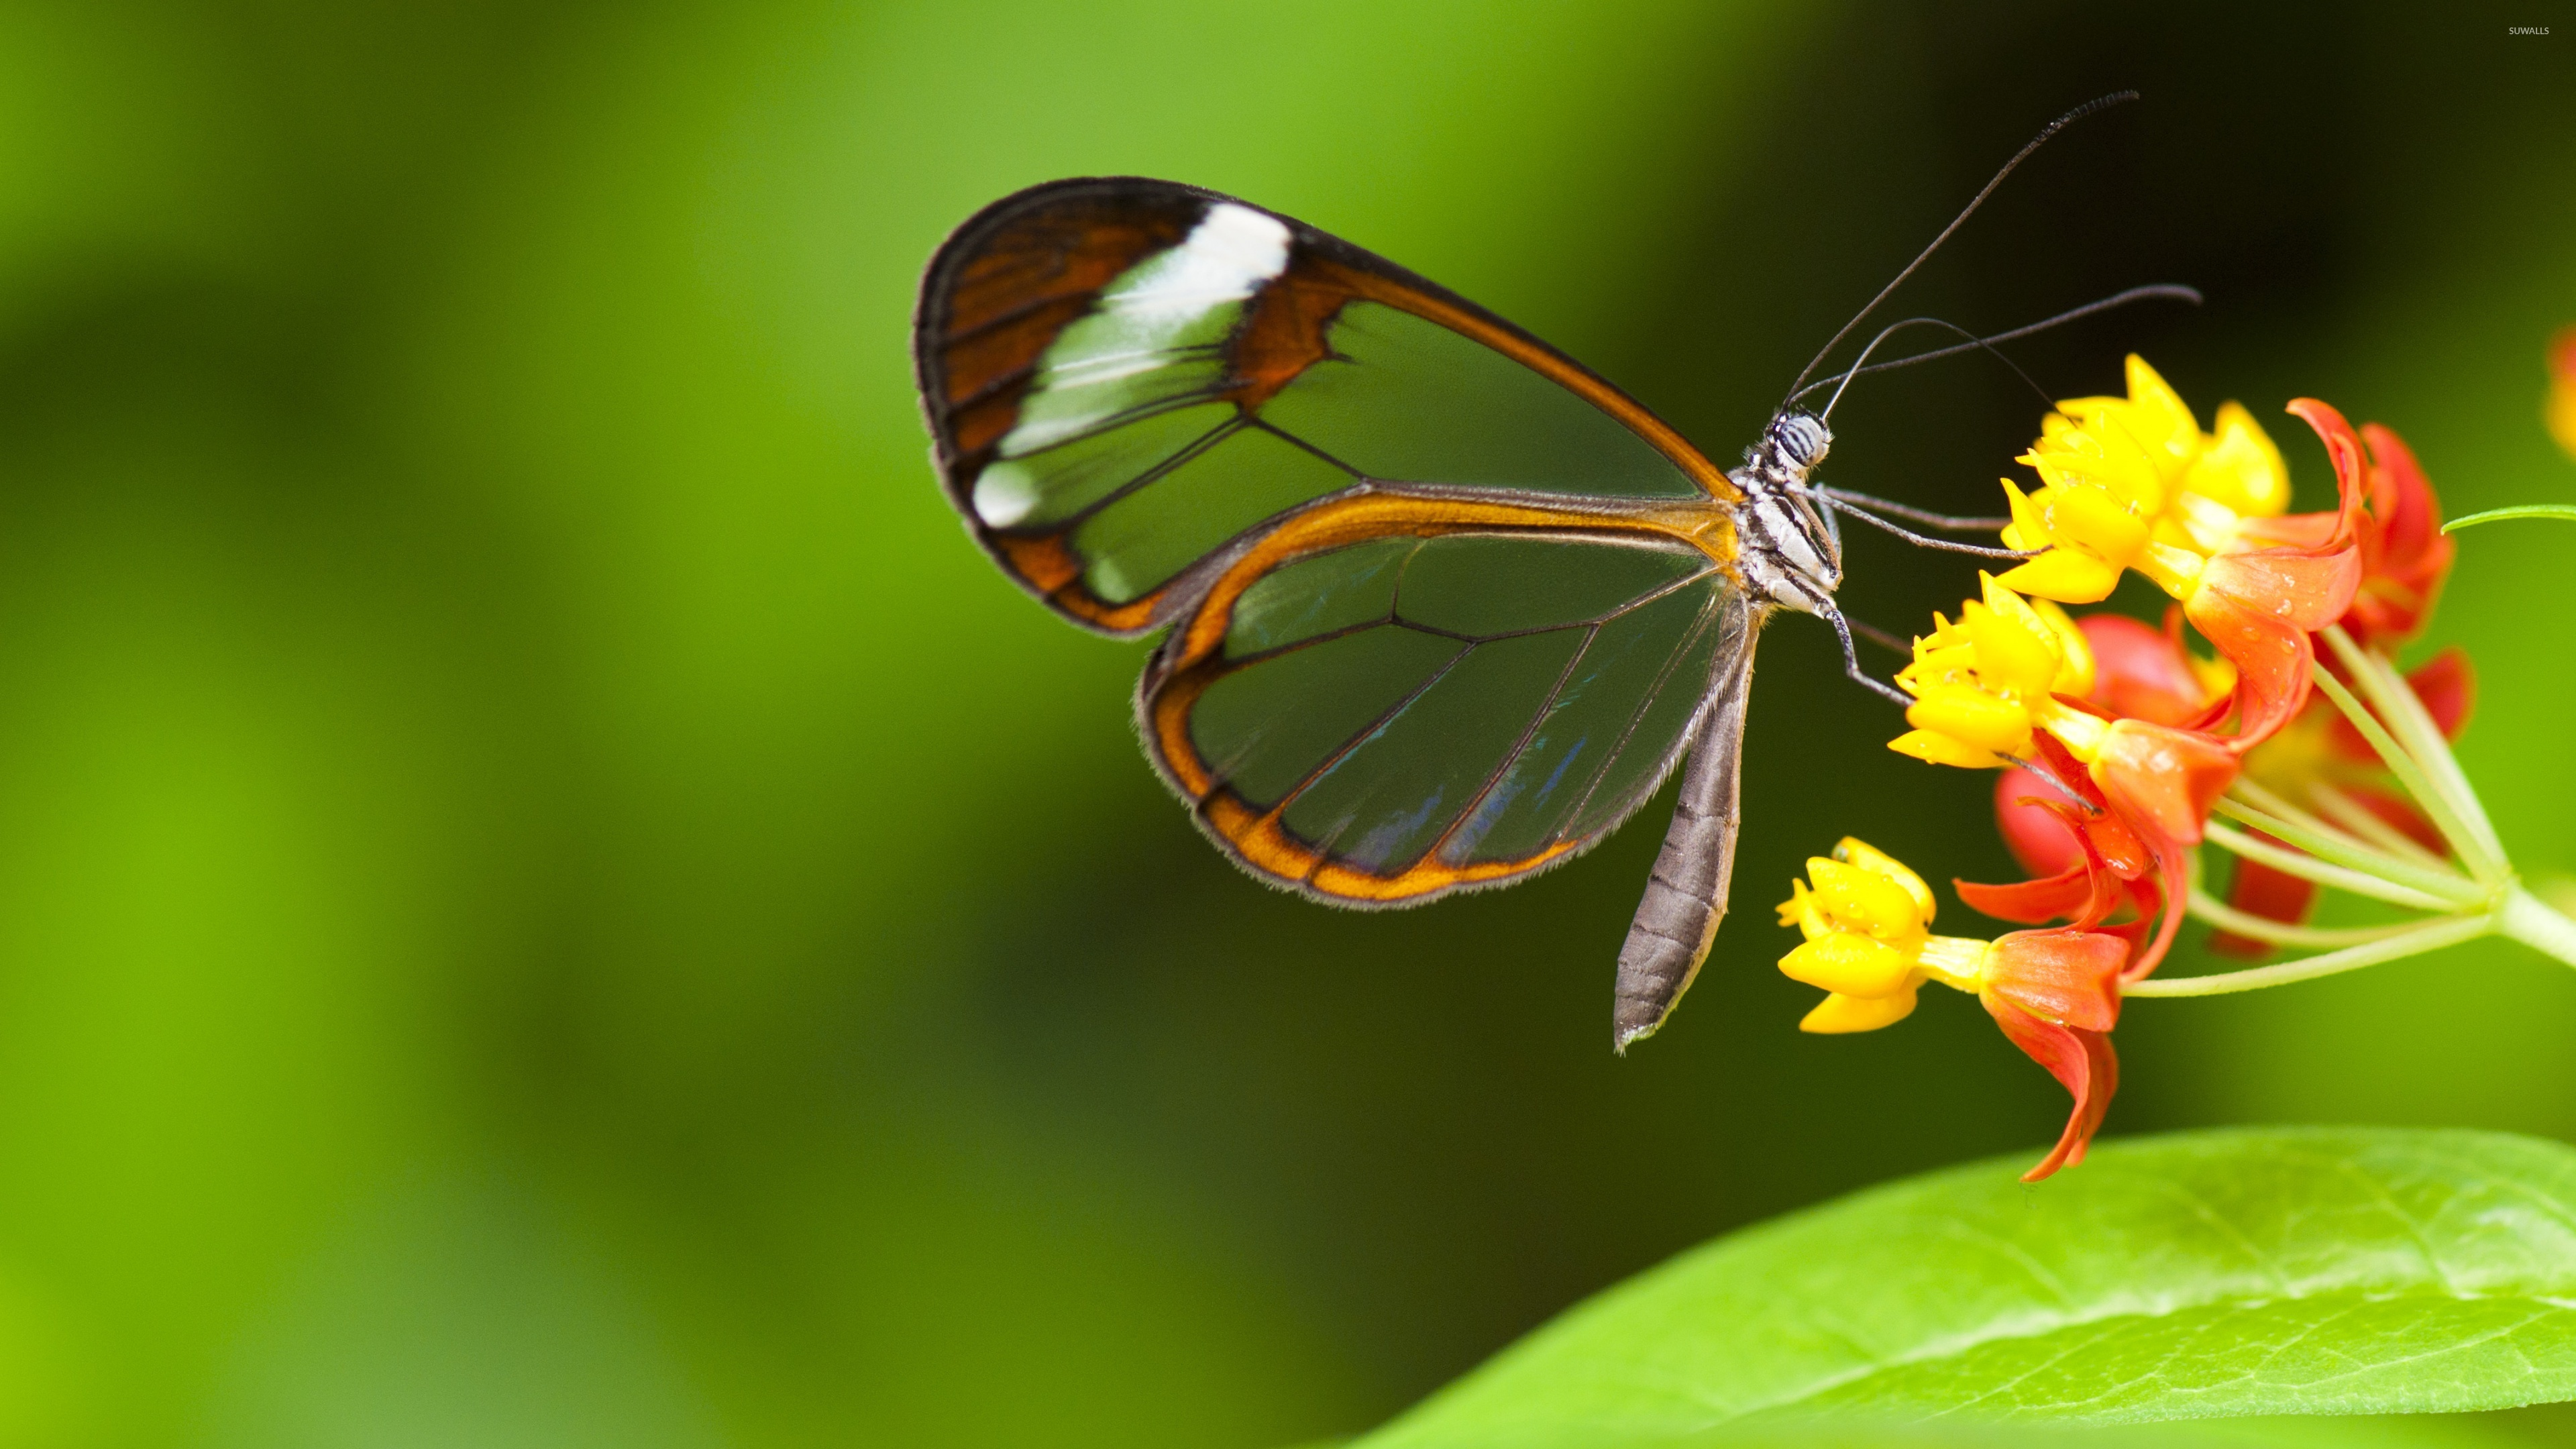 Greta Oto Glasswing Butterfly Photo Background for Desktop